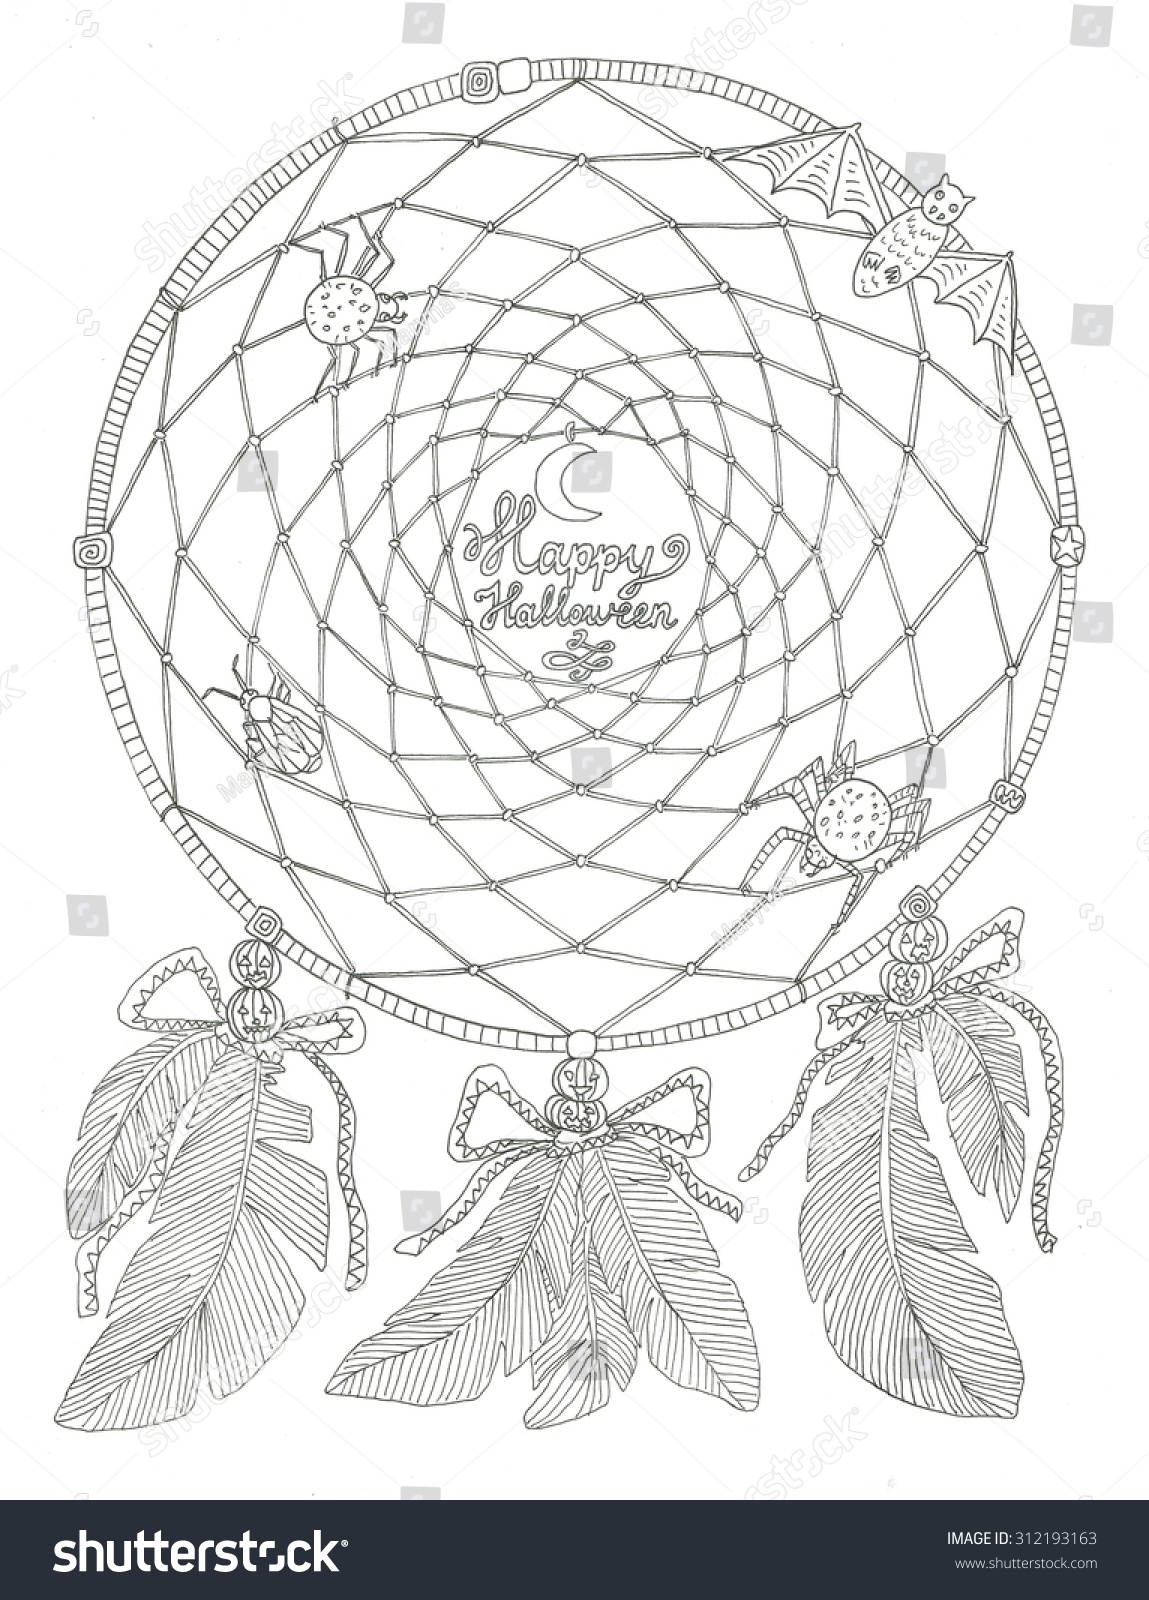 Coloring pages dream catchers - Halloween Dream Catcher Coloring Page